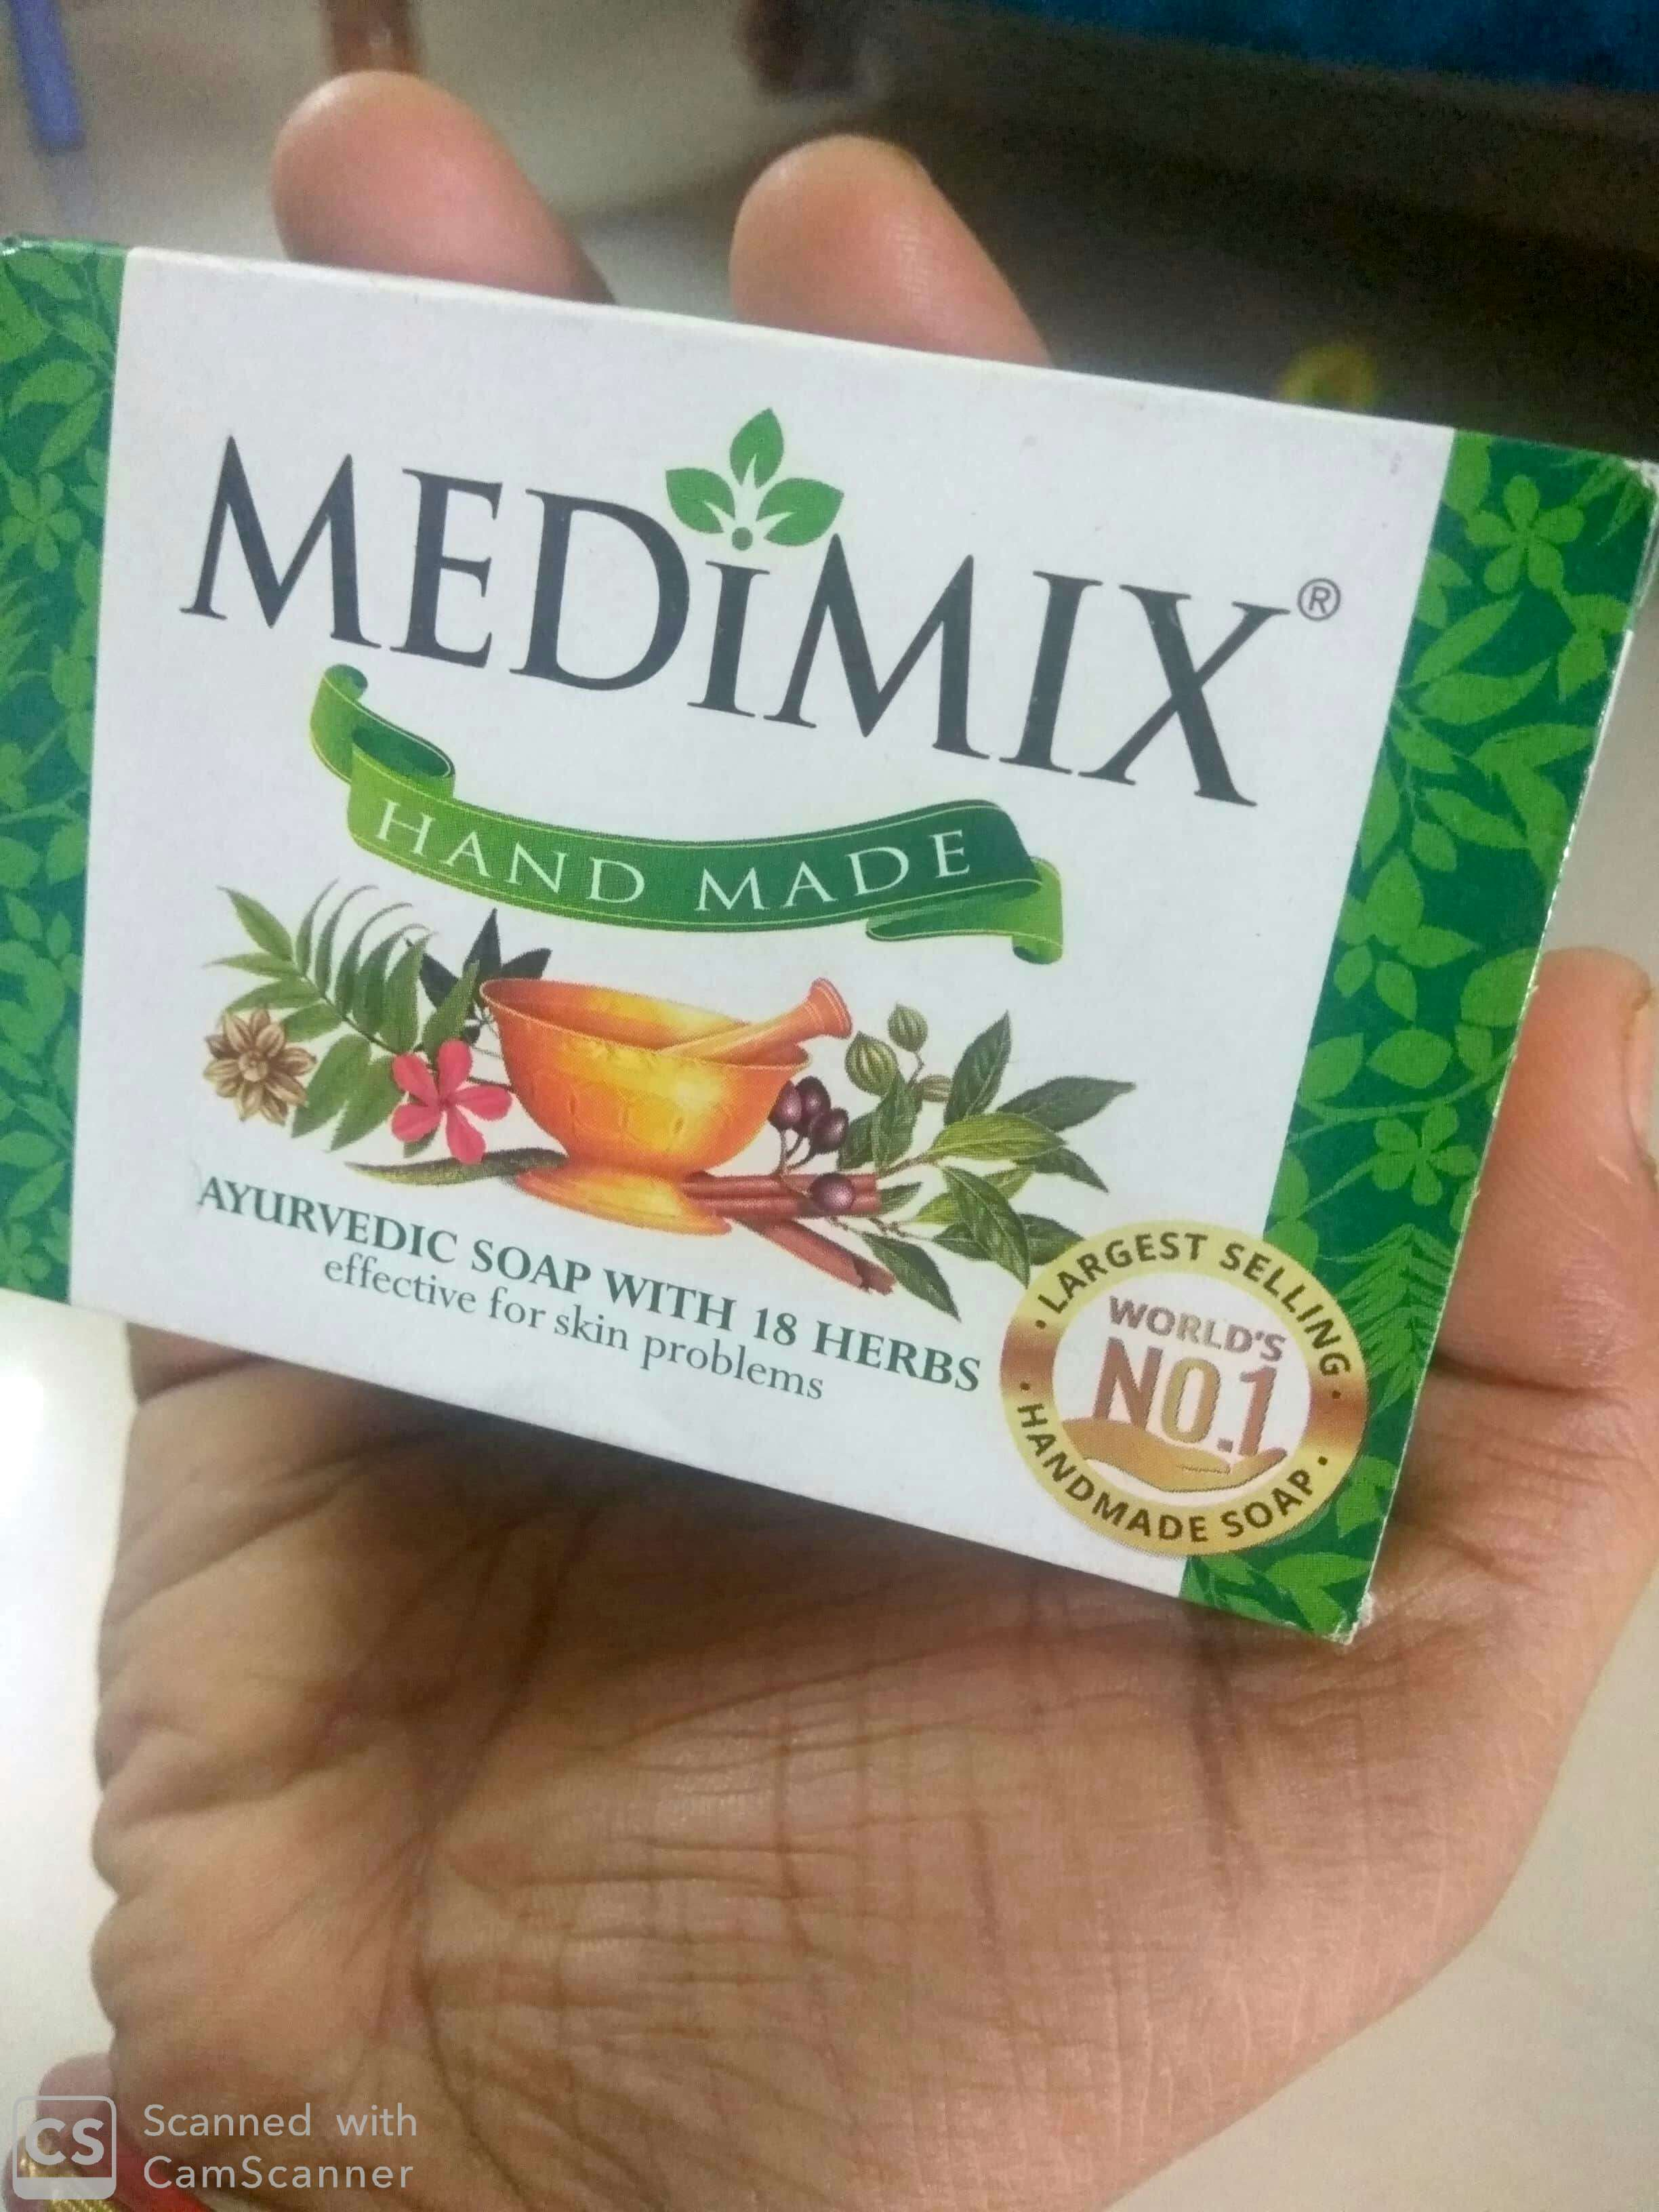 Medimix Ayurvedic 18 Herb Soap-Herbal product-By stylecp-2